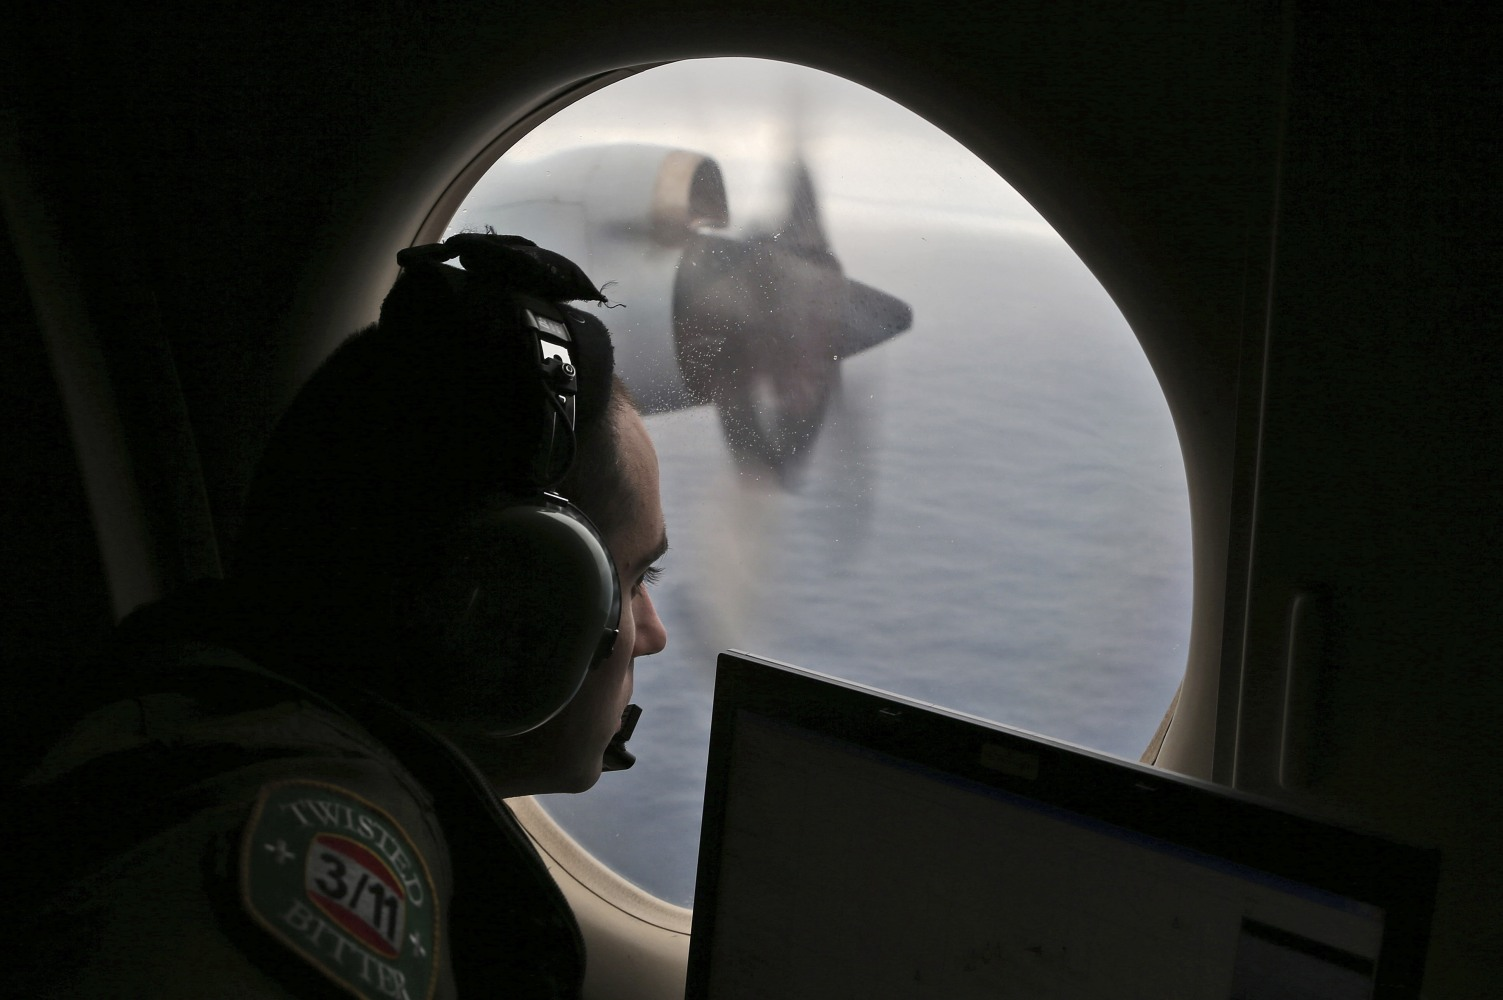 MH370 plunged rapidly, not ready for landing: New report